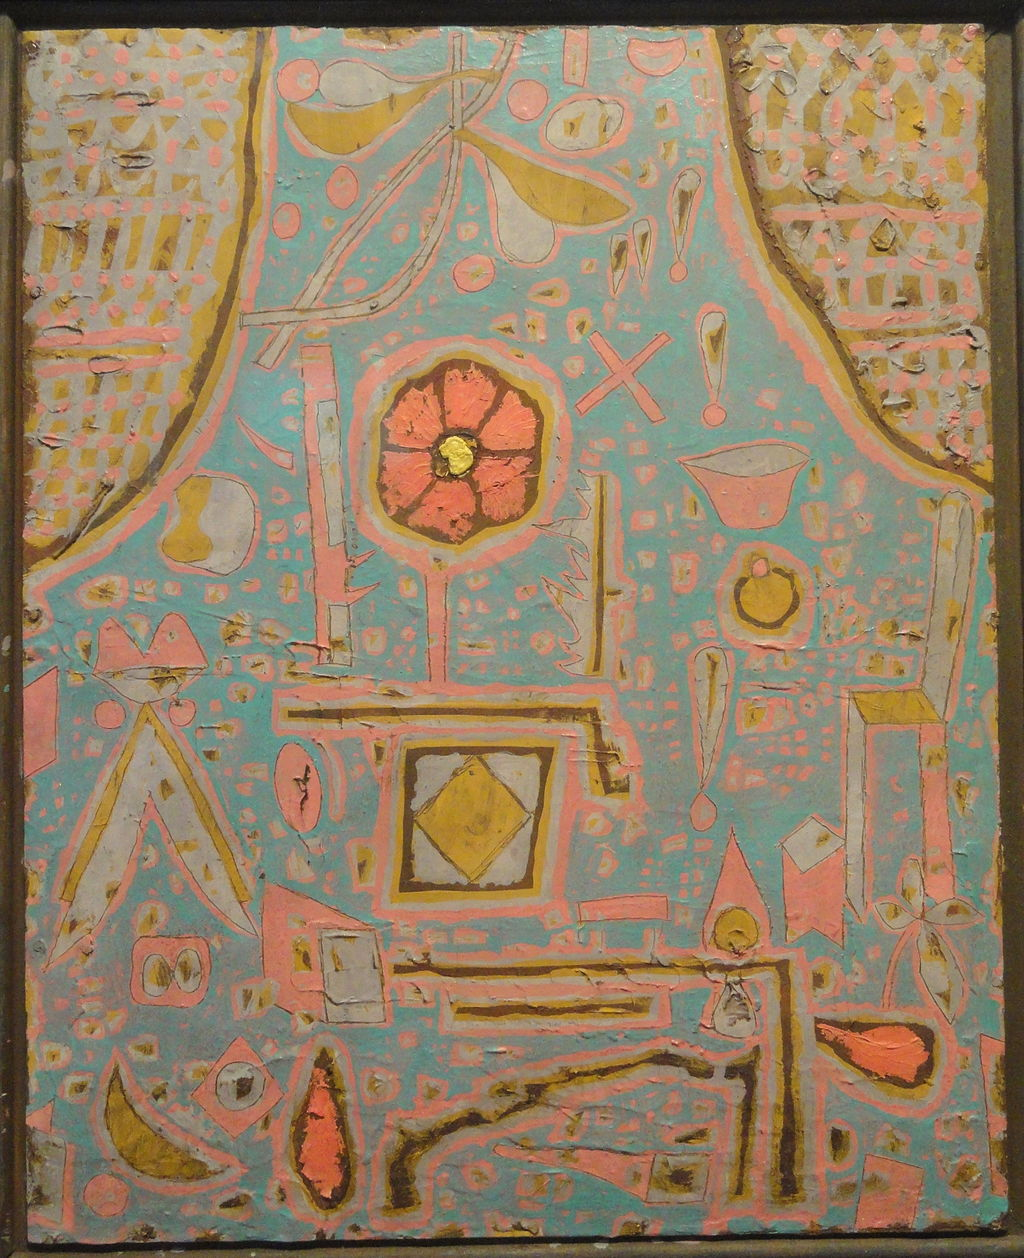 1024px-Efflorescence,_Paul_Klee,_1937,_oil_and_pencil_on_cardboard_-_Phillips_Collection_-_DSC04911